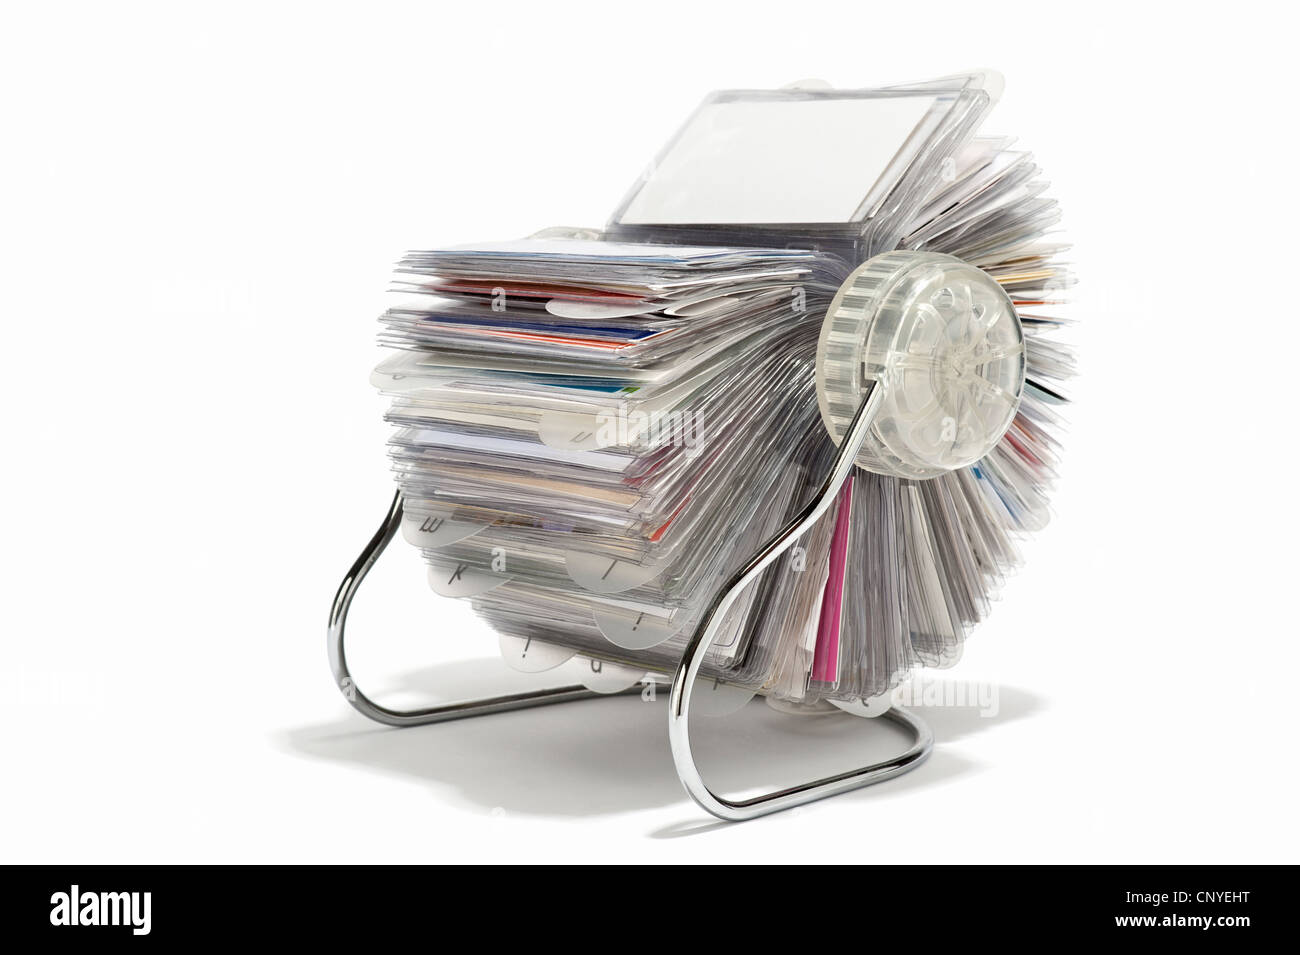 A rotary business card holder - Stock Image